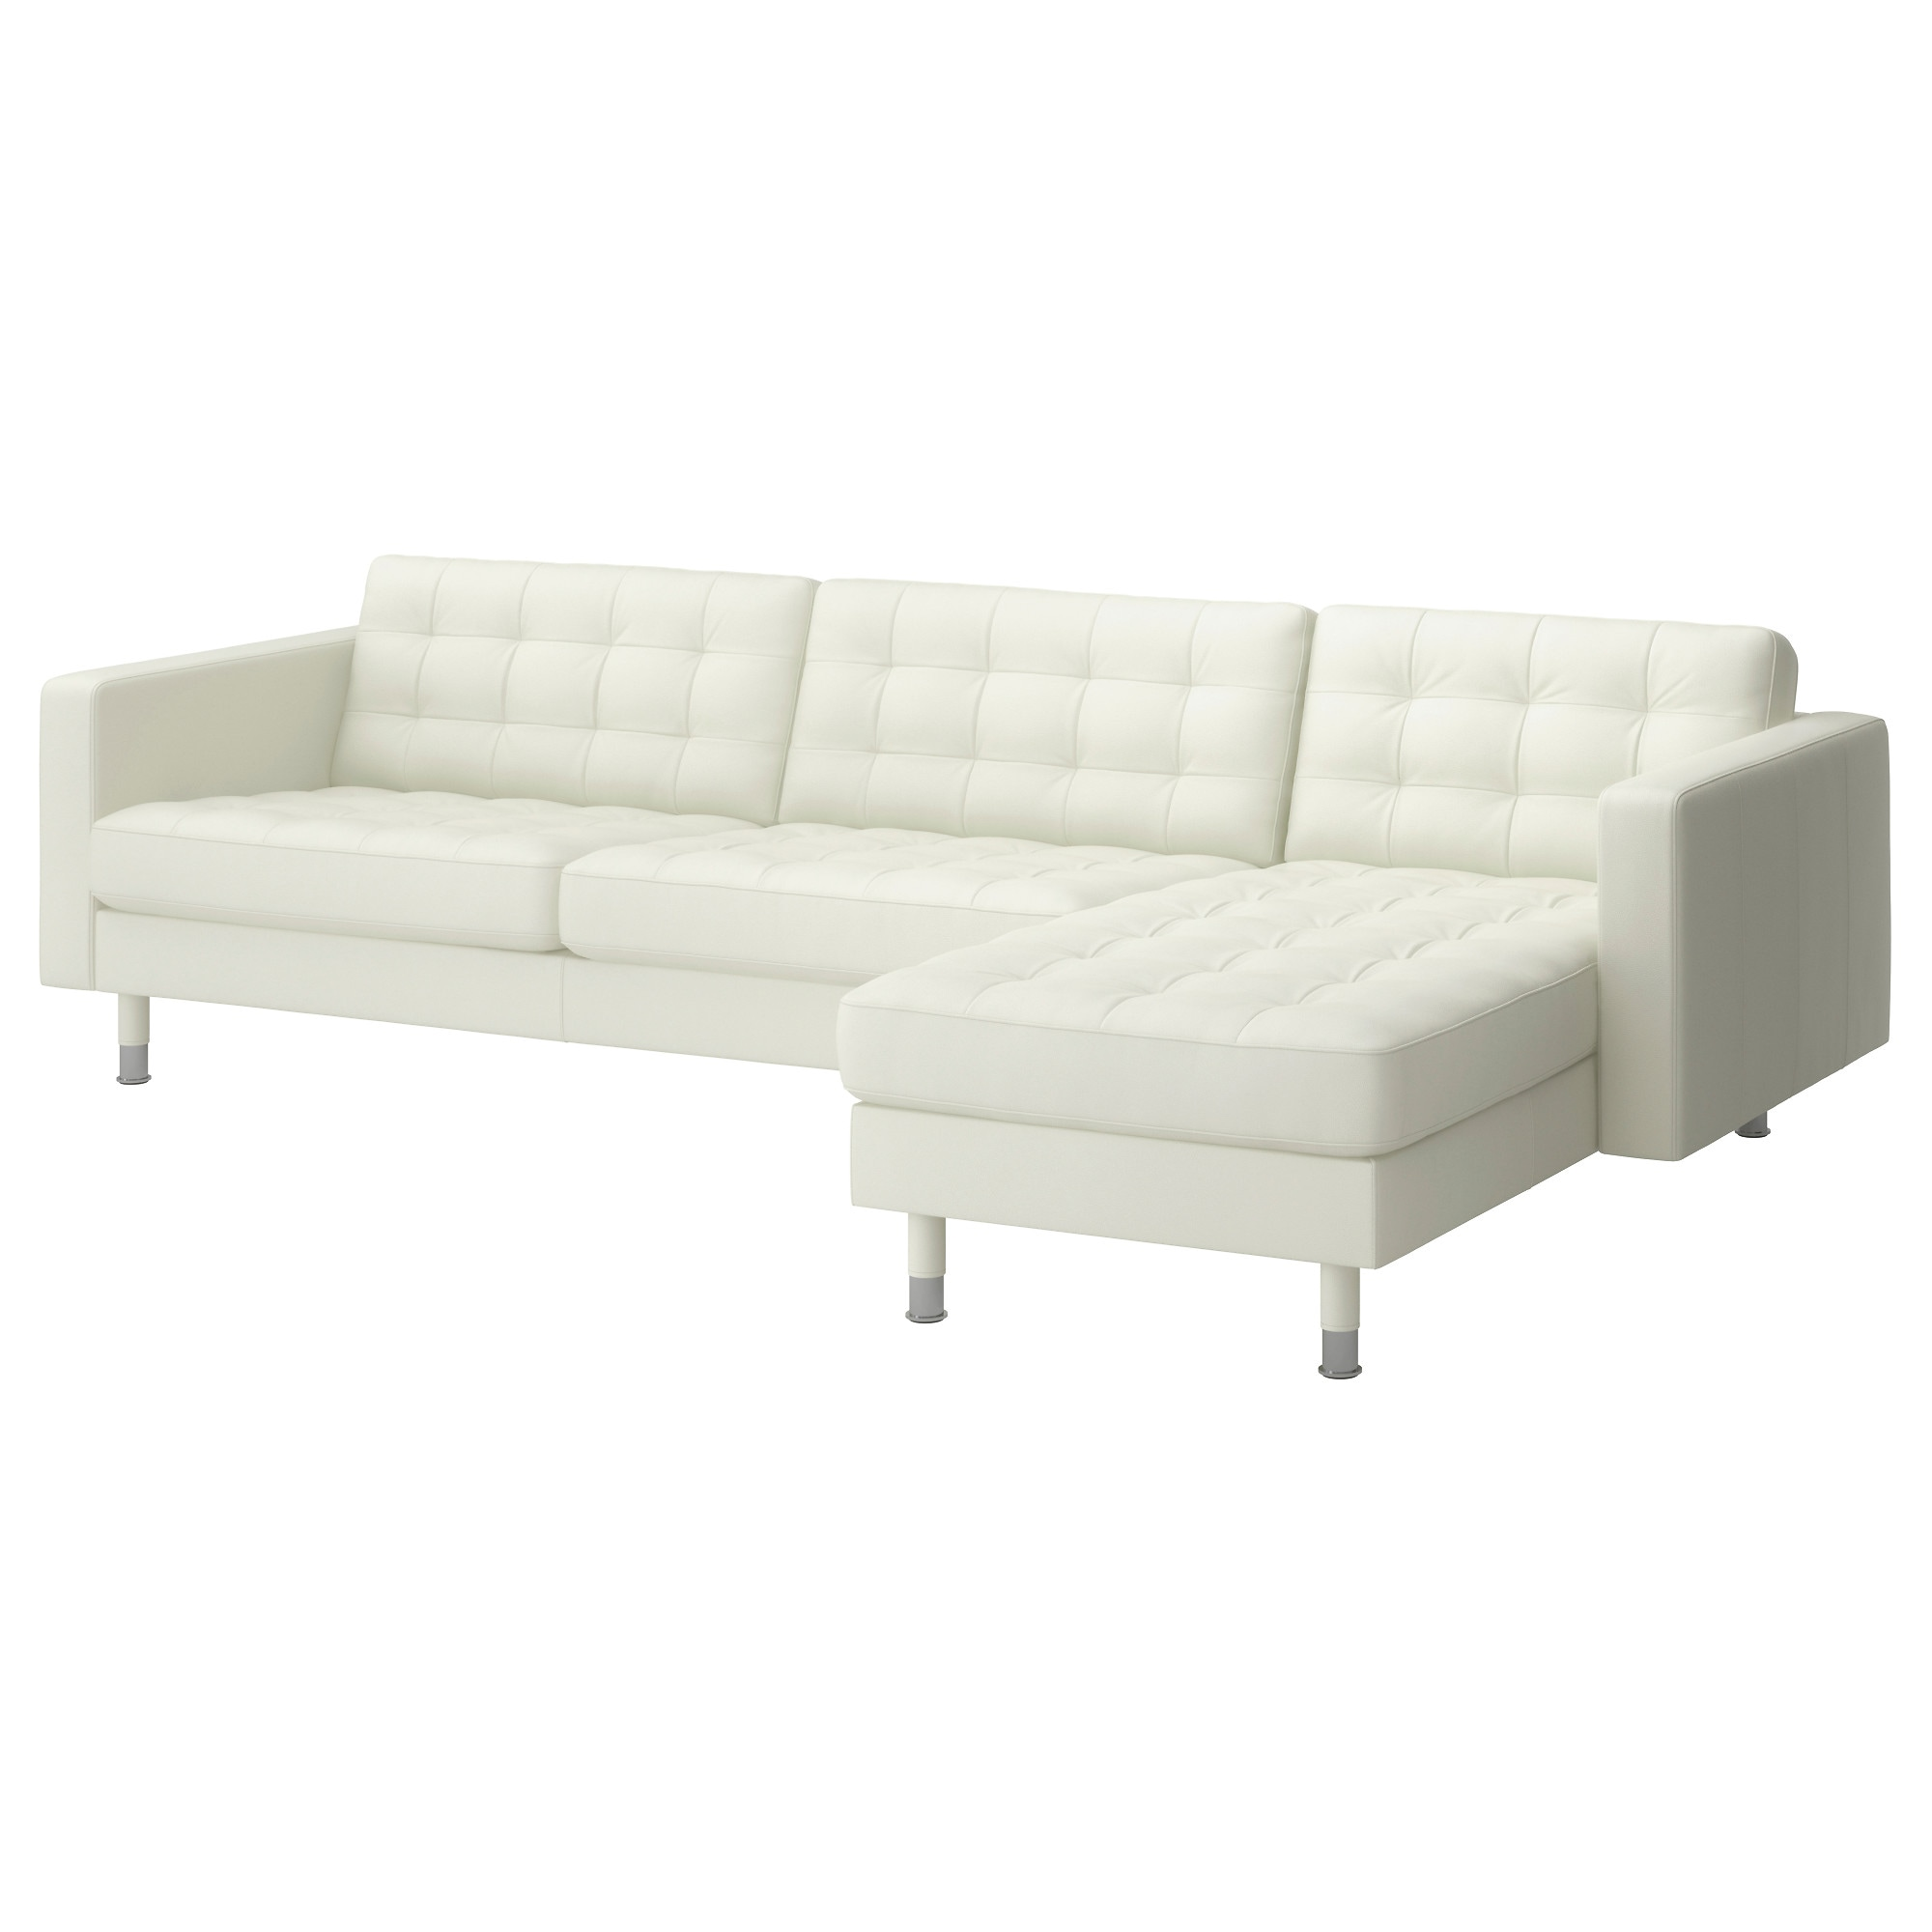 sc 1 st  Ikea : ikea couches sectional - Sectionals, Sofas & Couches